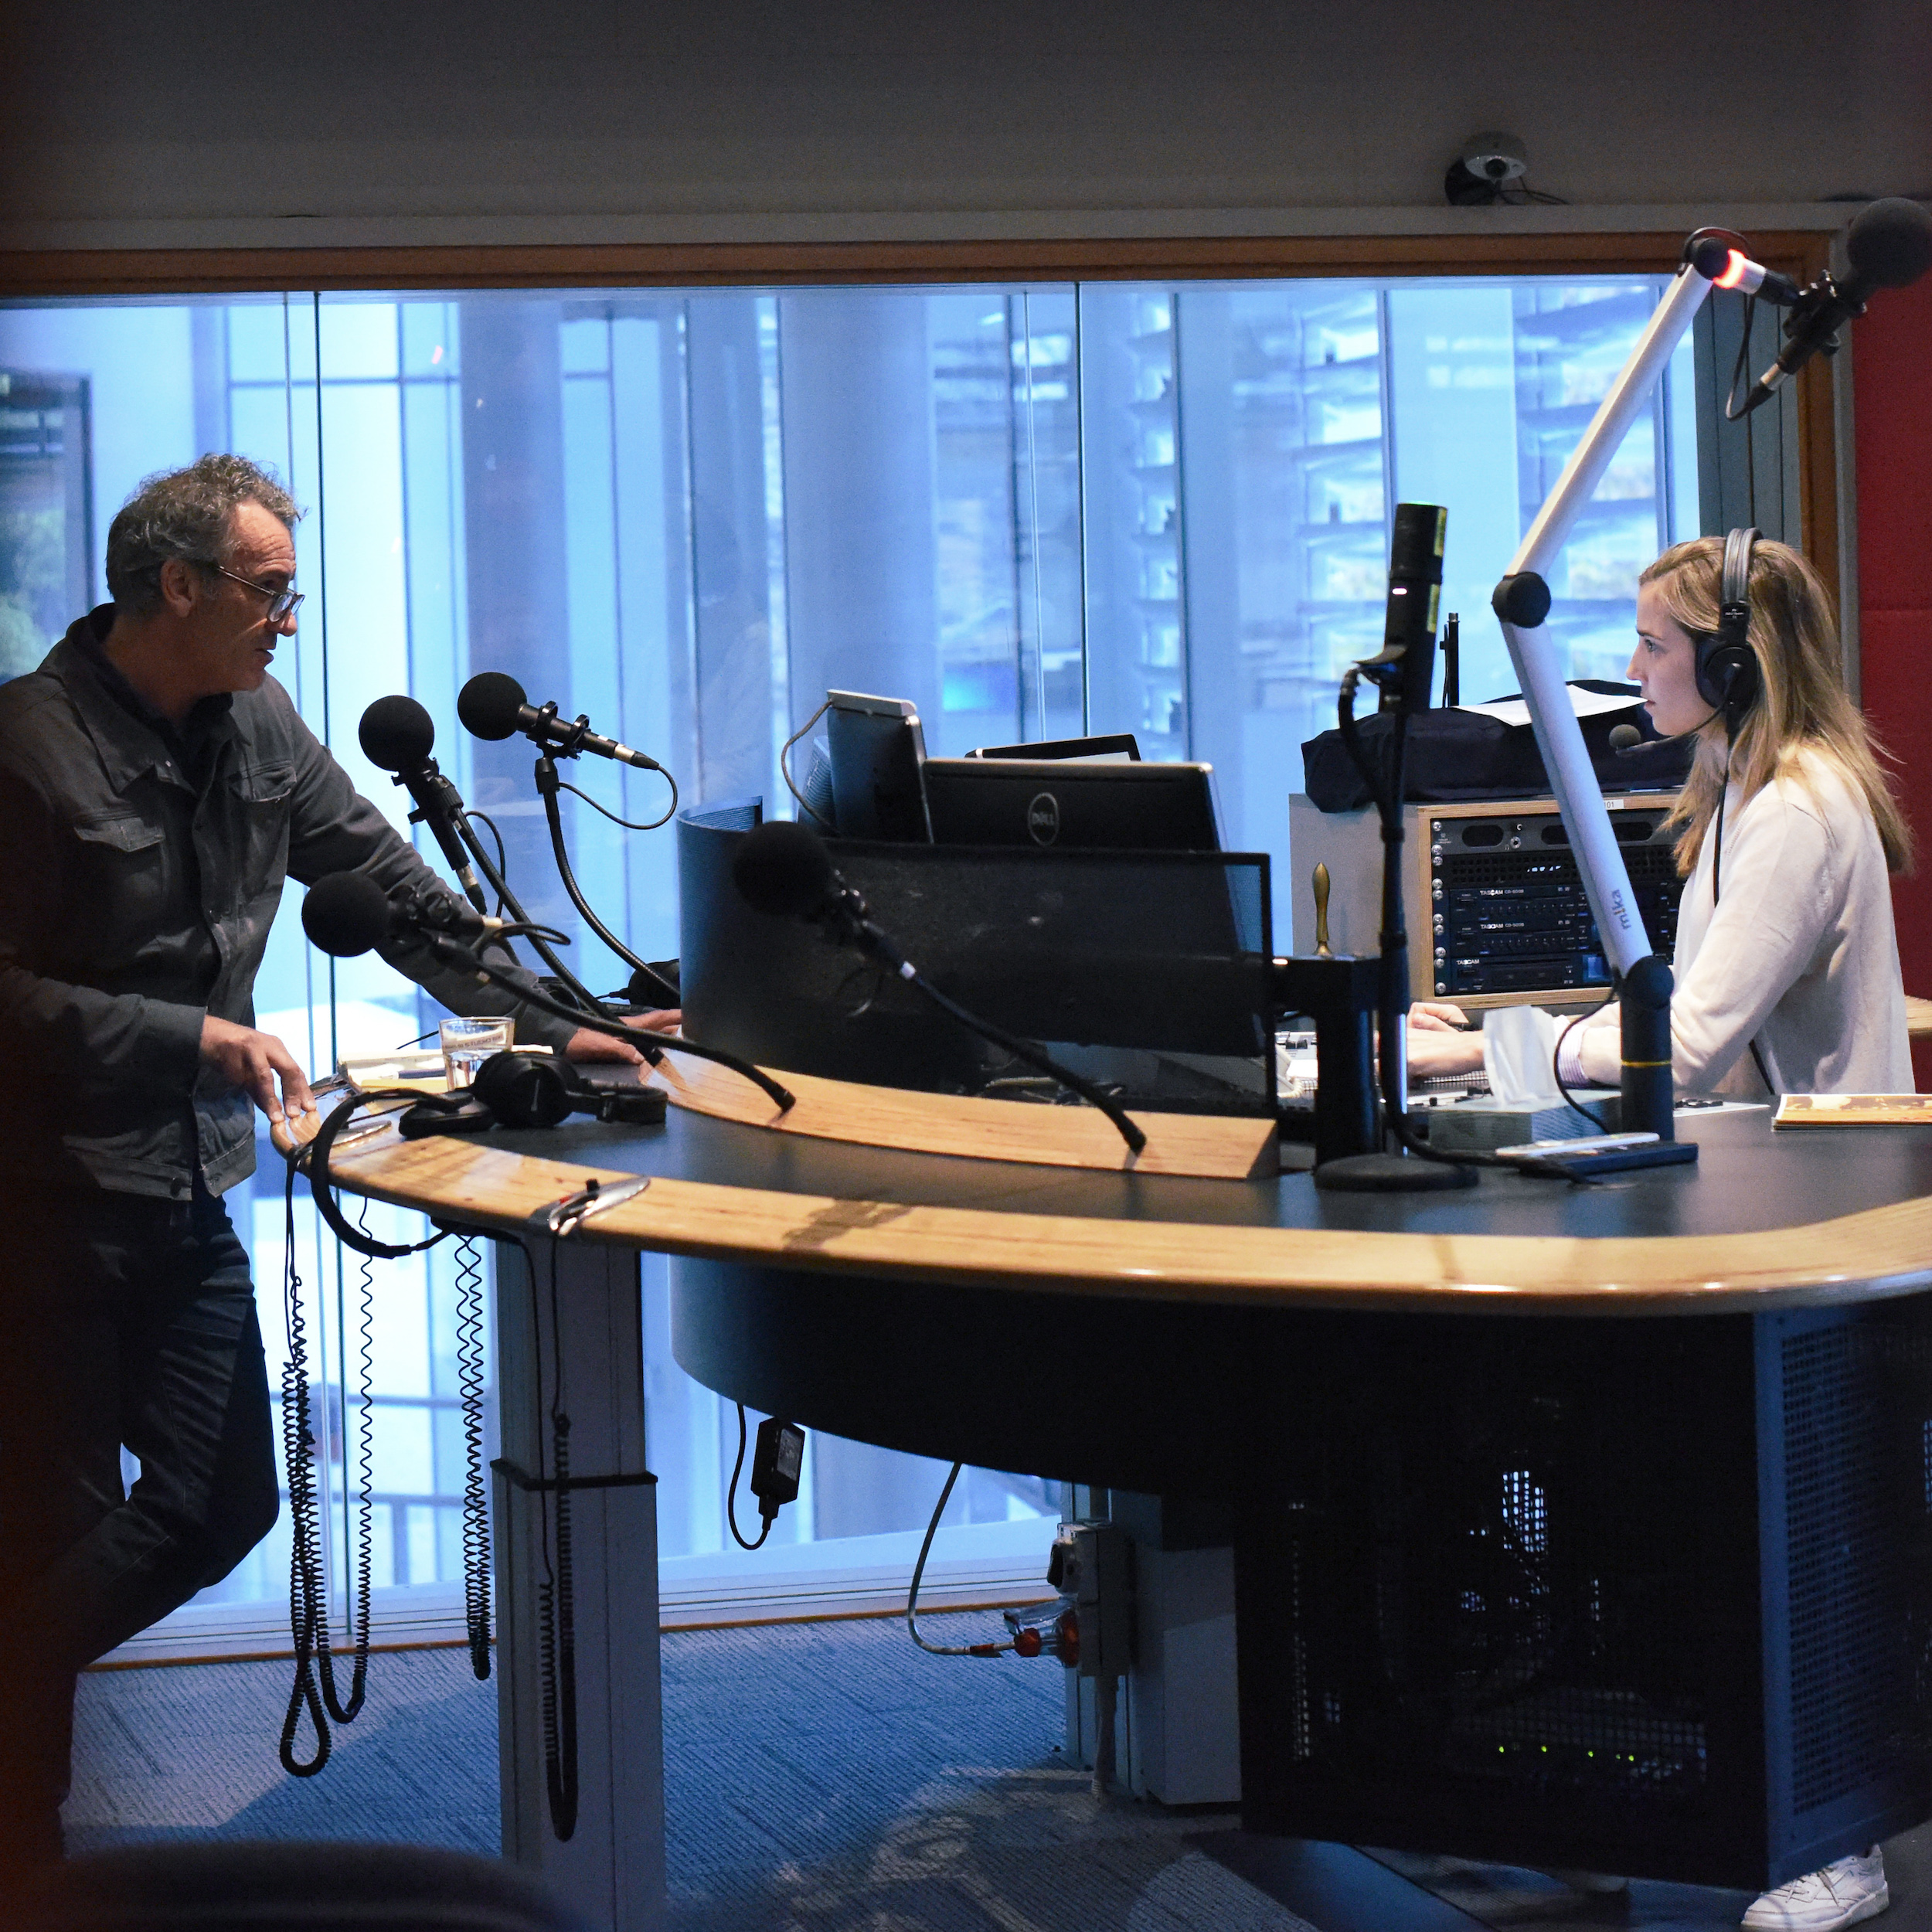 Historian and Filmmaker Steve Kinnane speaking on ABC Perth for the launch of the series.